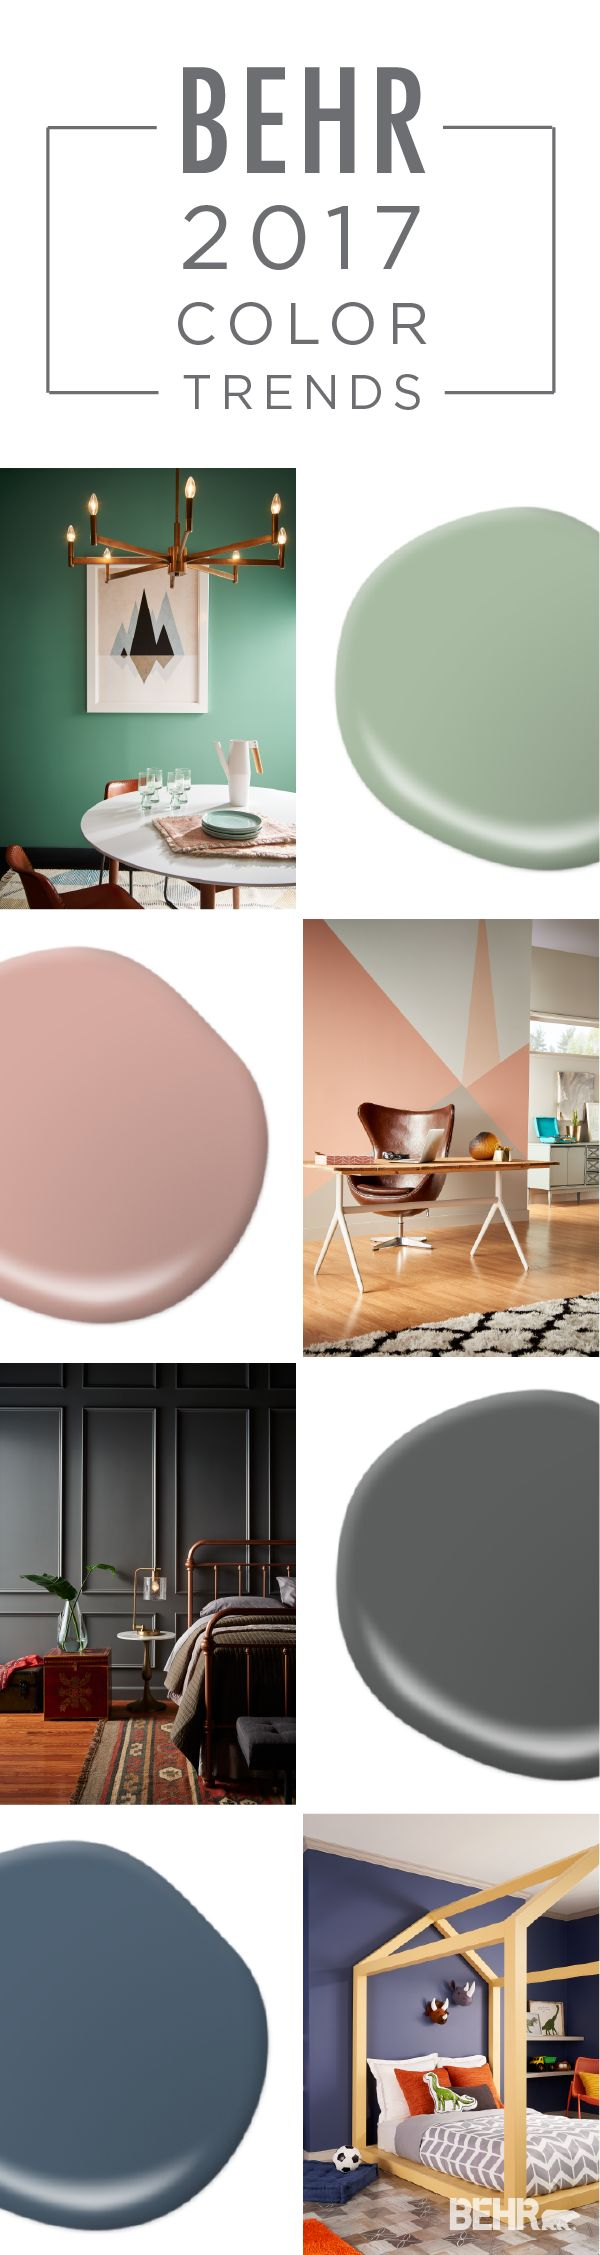 Make each room of your home a unique design experience with these shades from the BEHR 2017 Color Trends. Check out the shade Balanced to refresh your dining space, Everything's Rosy to give your home office a chic spin, Shades On for a modern aesthetic, and Midnight Show to give the bedroom a classic feel.